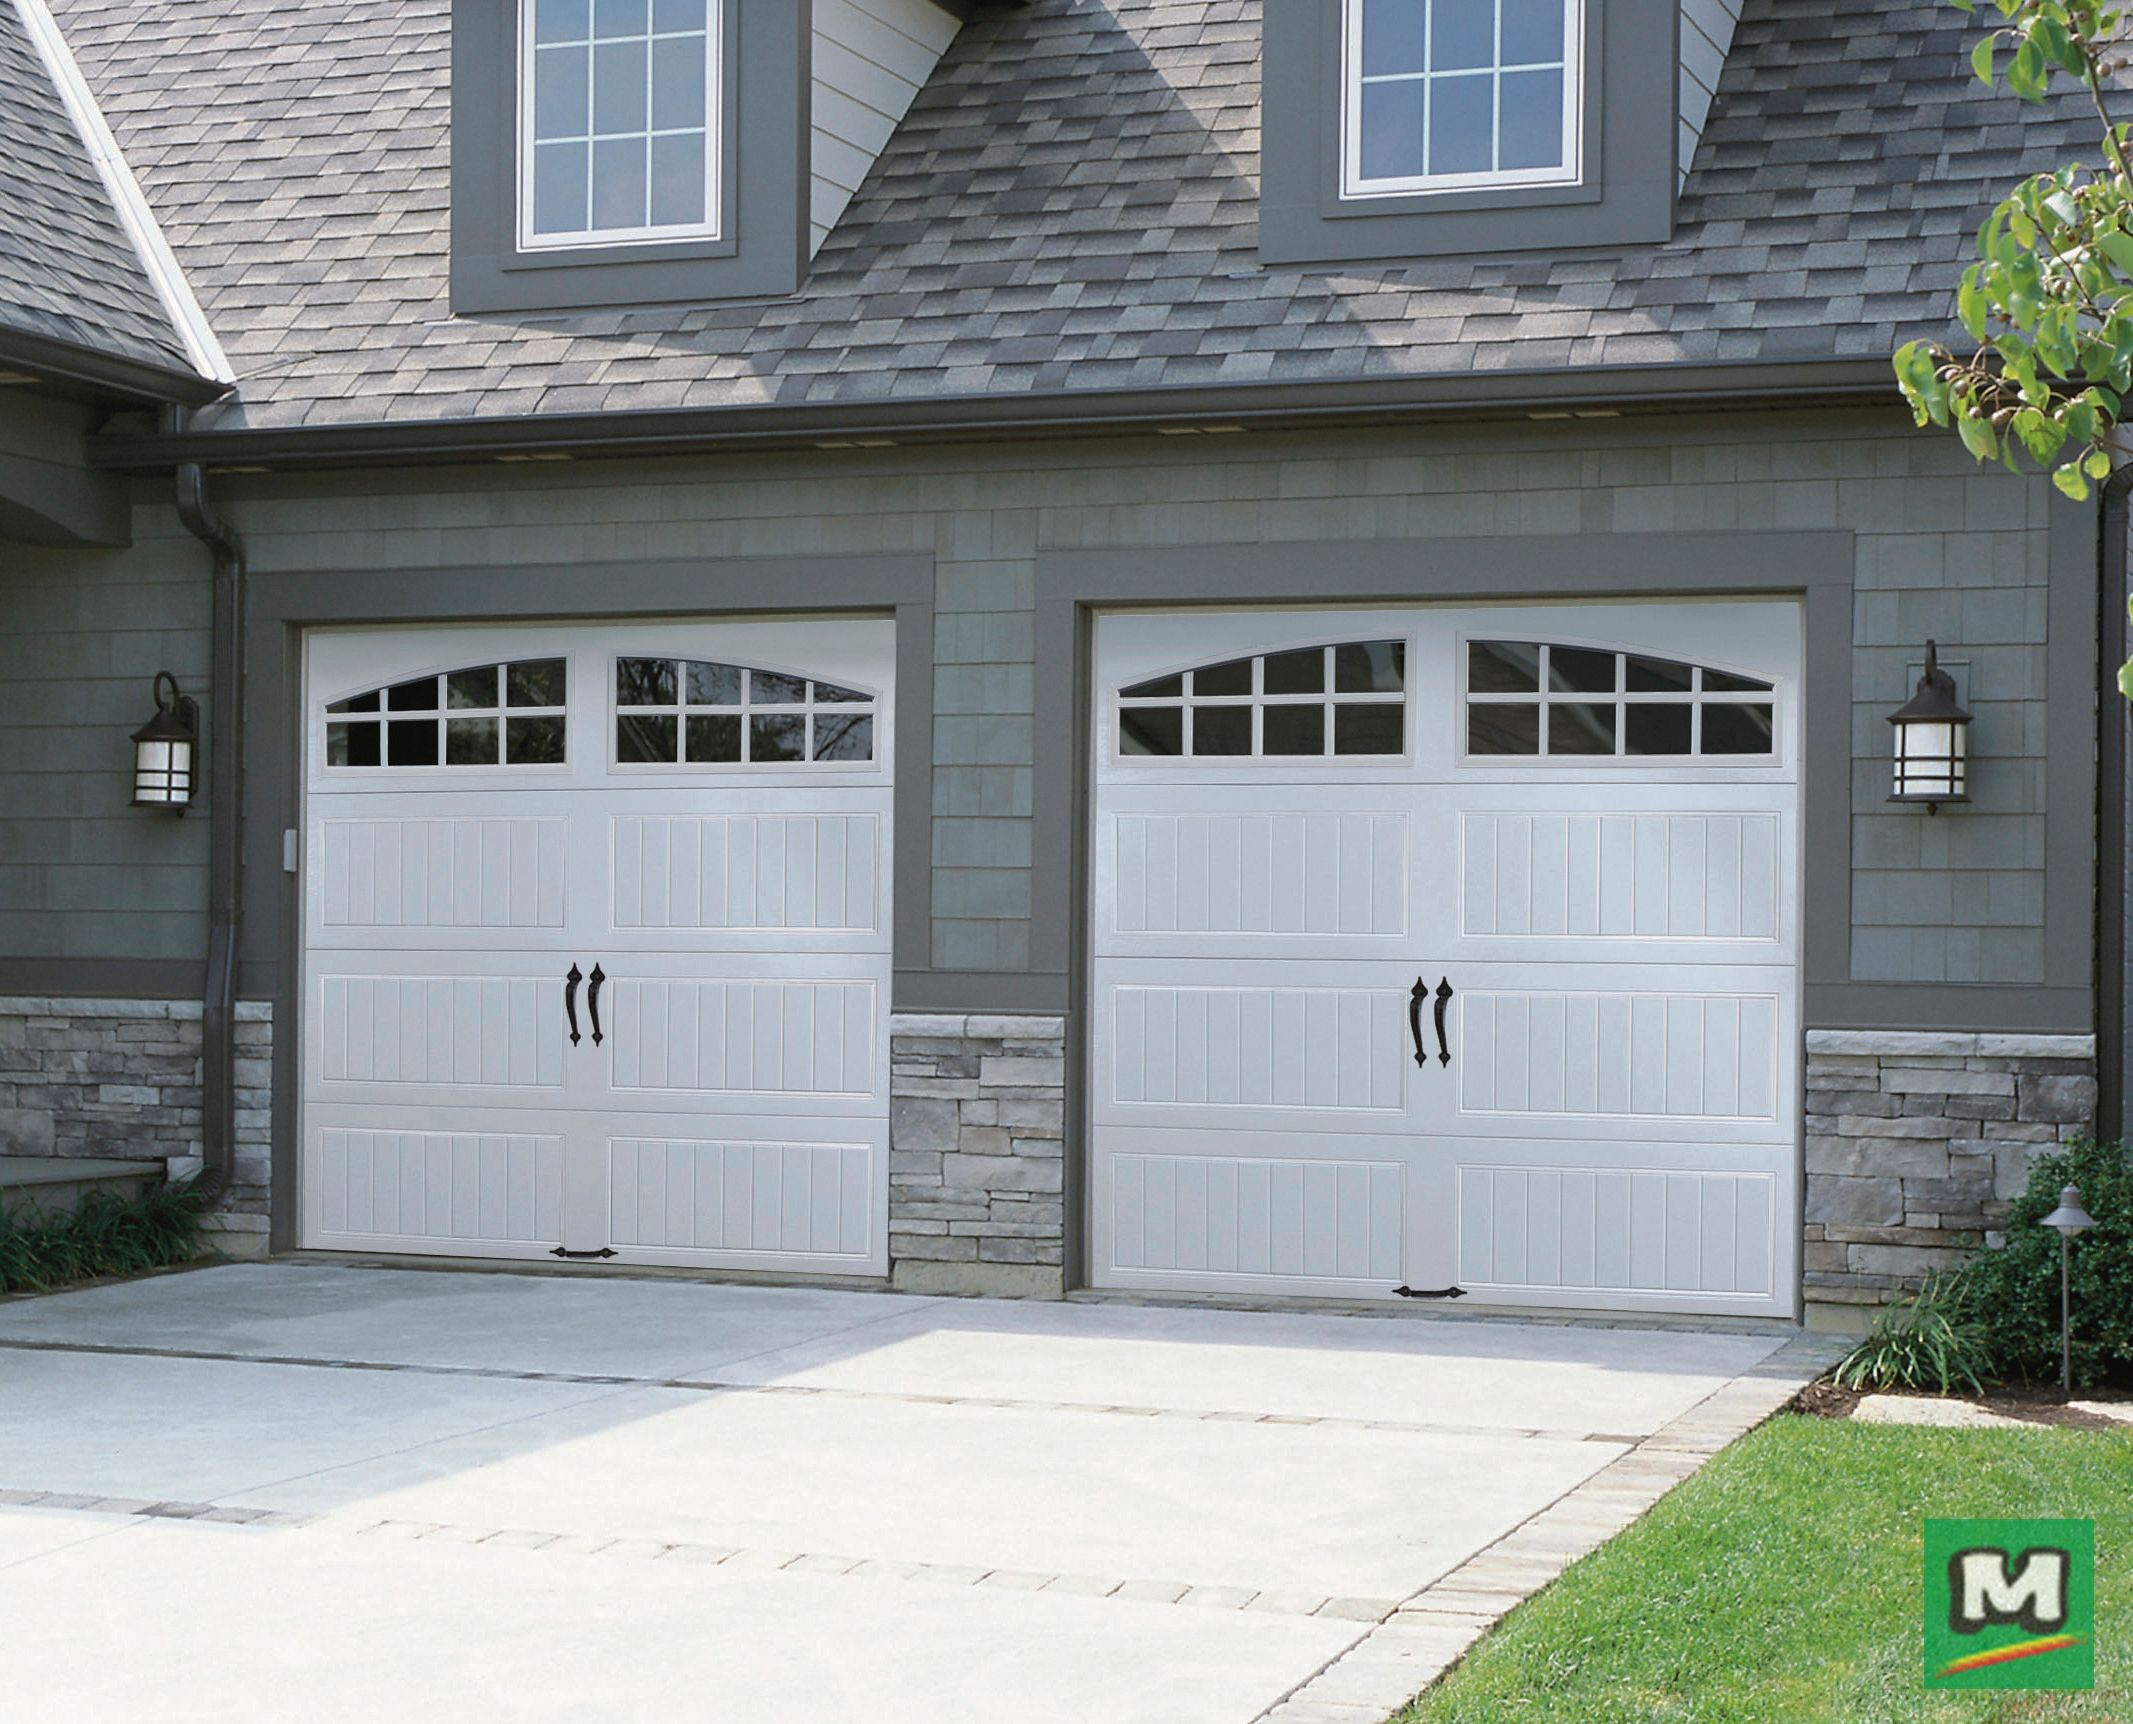 Add Curb Appeal And Energy Savings With This Ideal Door Garage Door Featuring Designer Short Panels And Arc Garage Doors Ideal Garage Doors Garage Door Styles